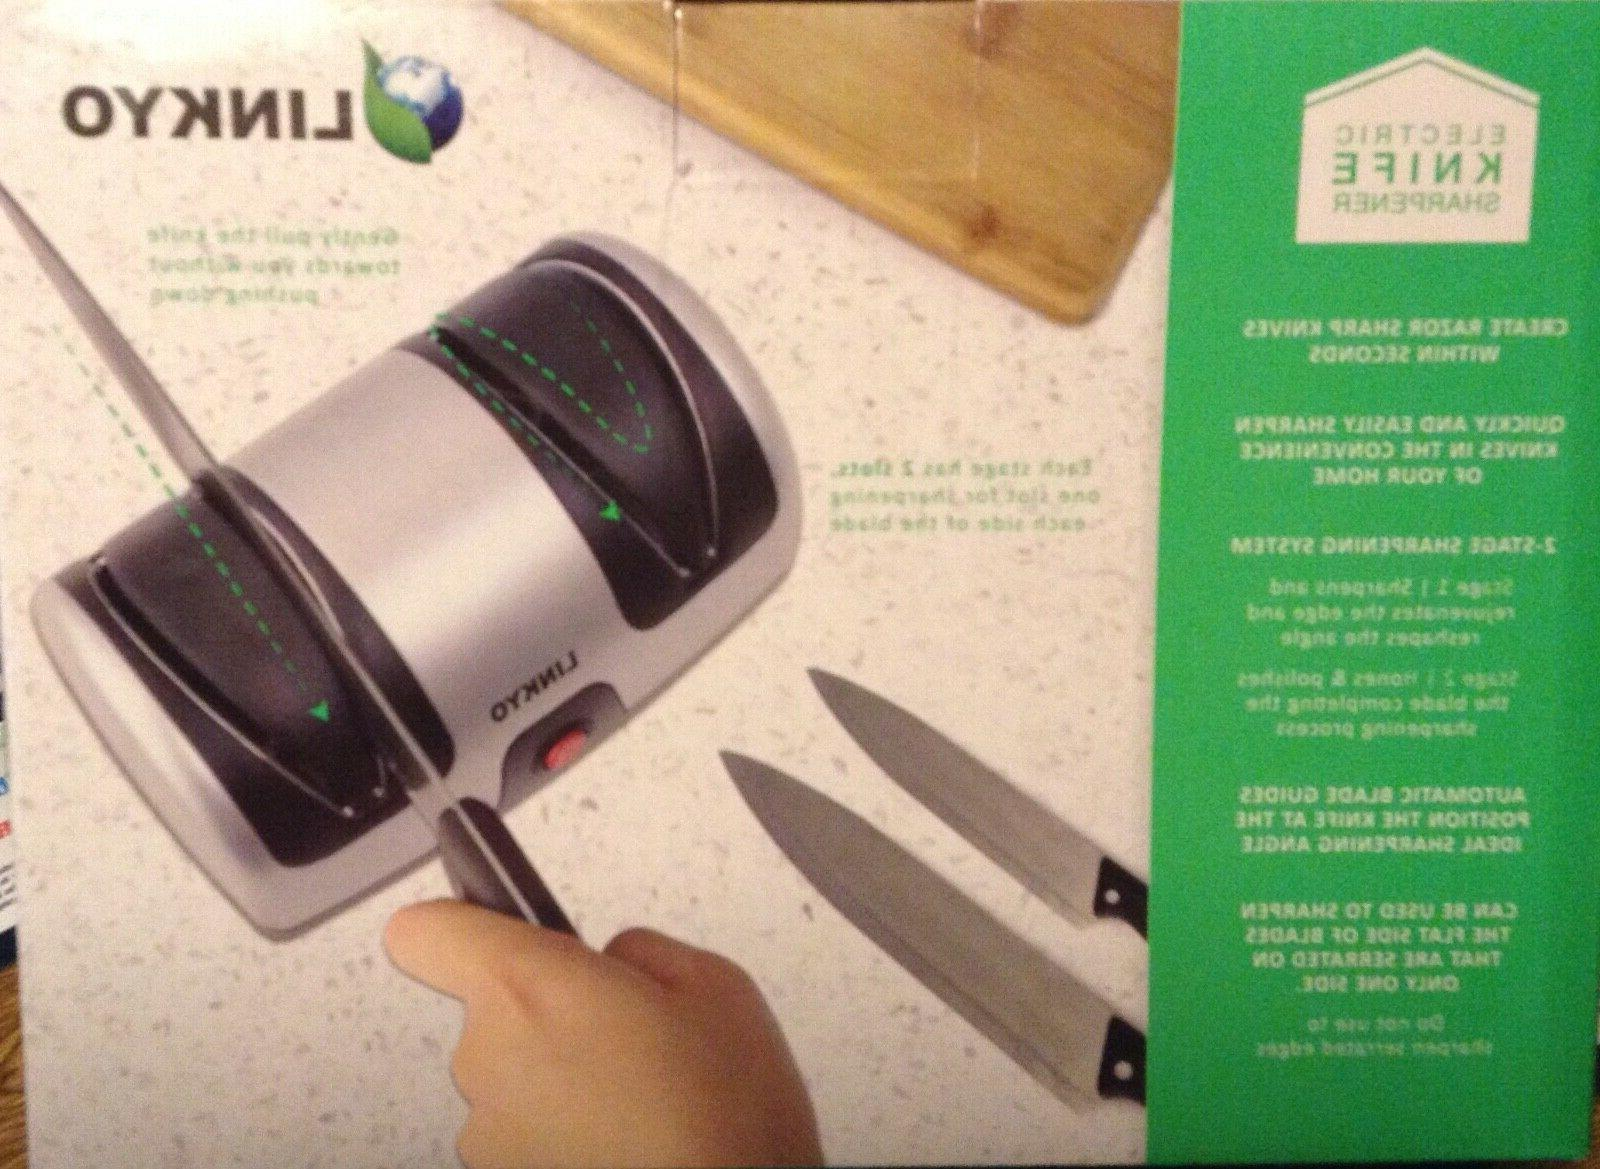 NIB LINKYO Sharpener, Kitchen Sharpening